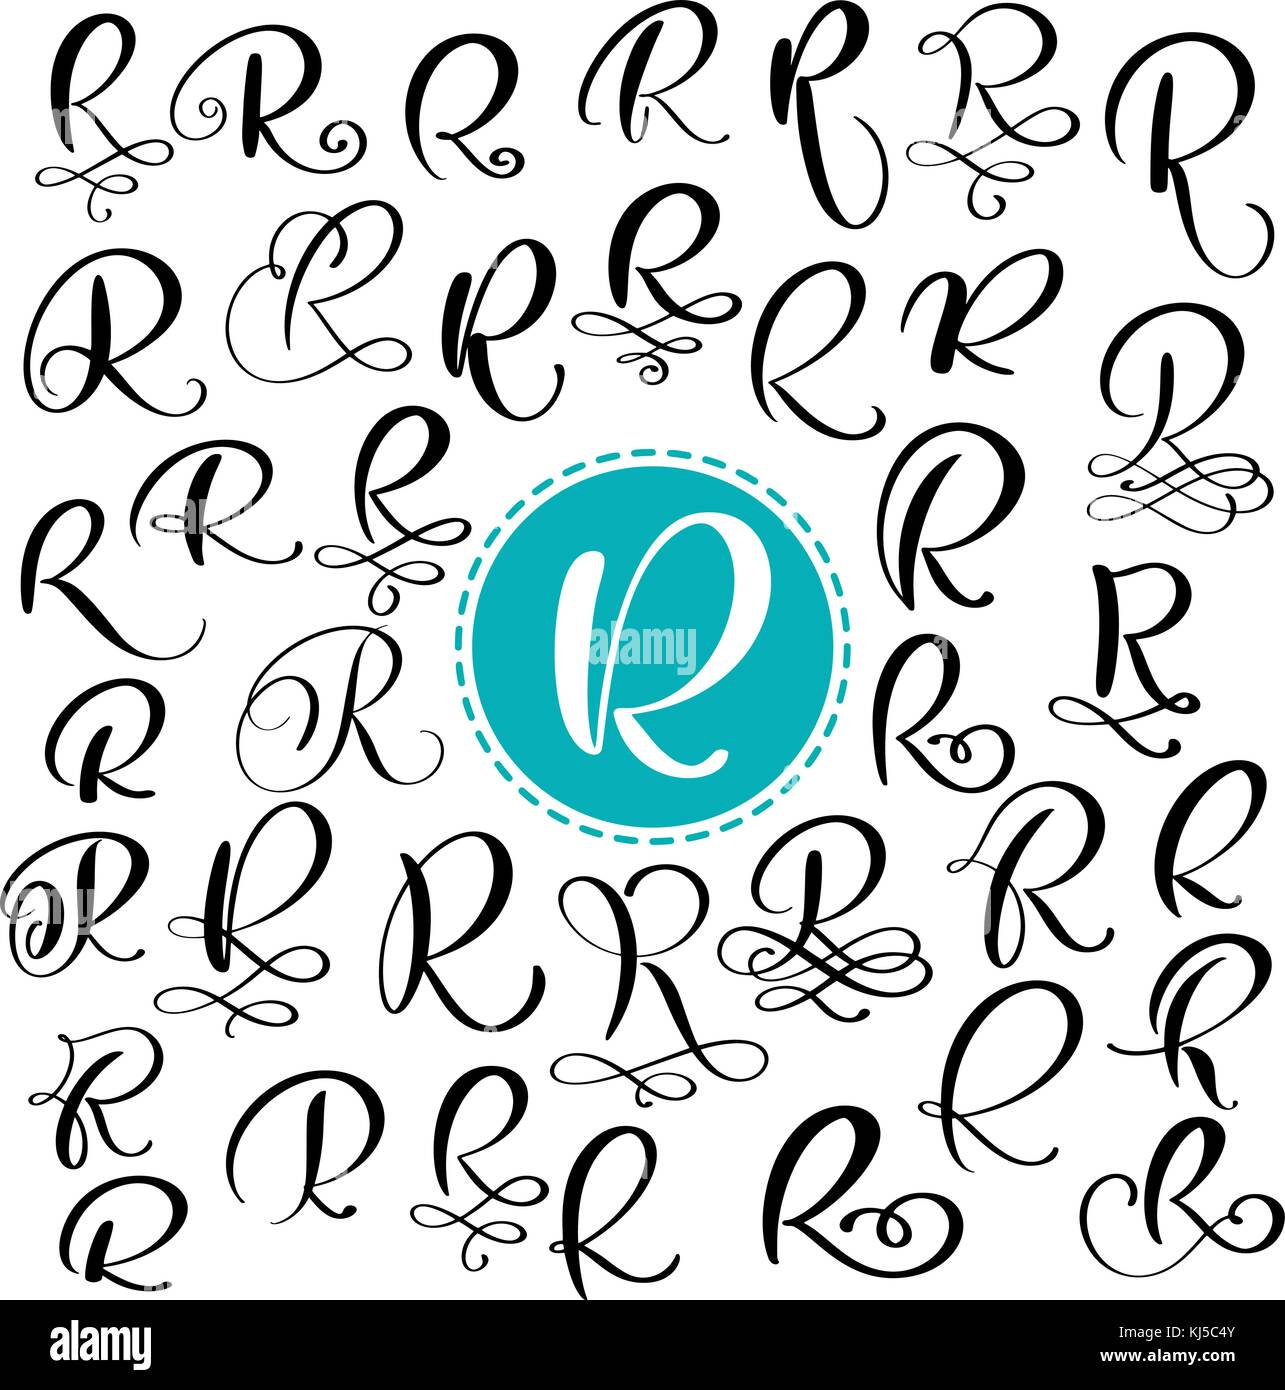 Set Letter R Hand Drawn Vector Flourish Calligraphy Script Font Isolated Letters Written With Ink Handwritten Brush Style Lettering For Logos